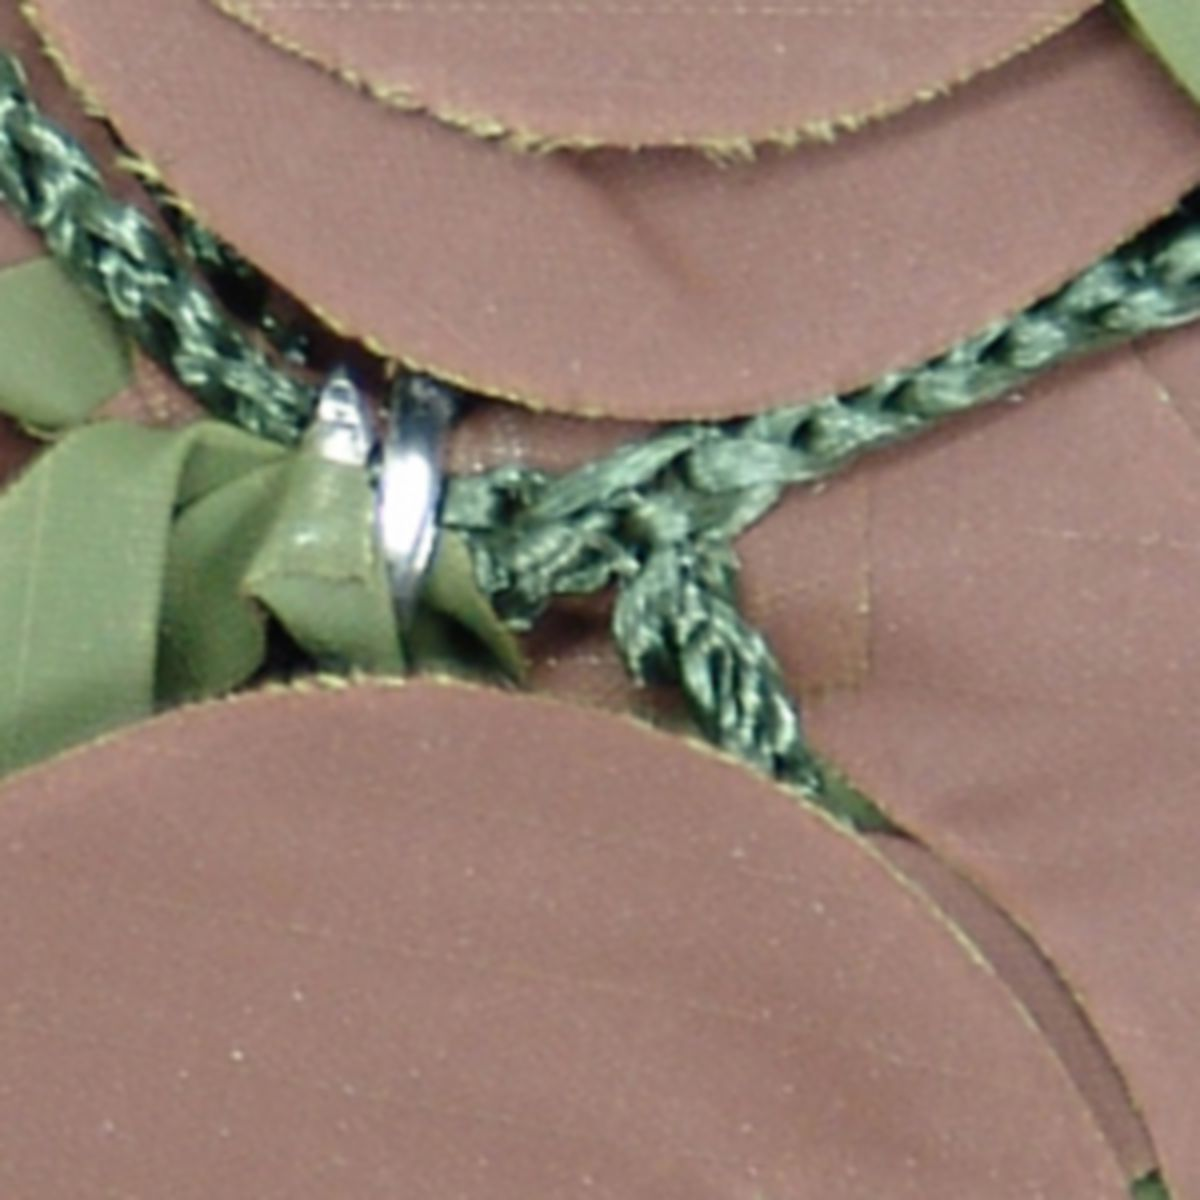 CamoSystems™ Basic Series Military Camouflage Field Net